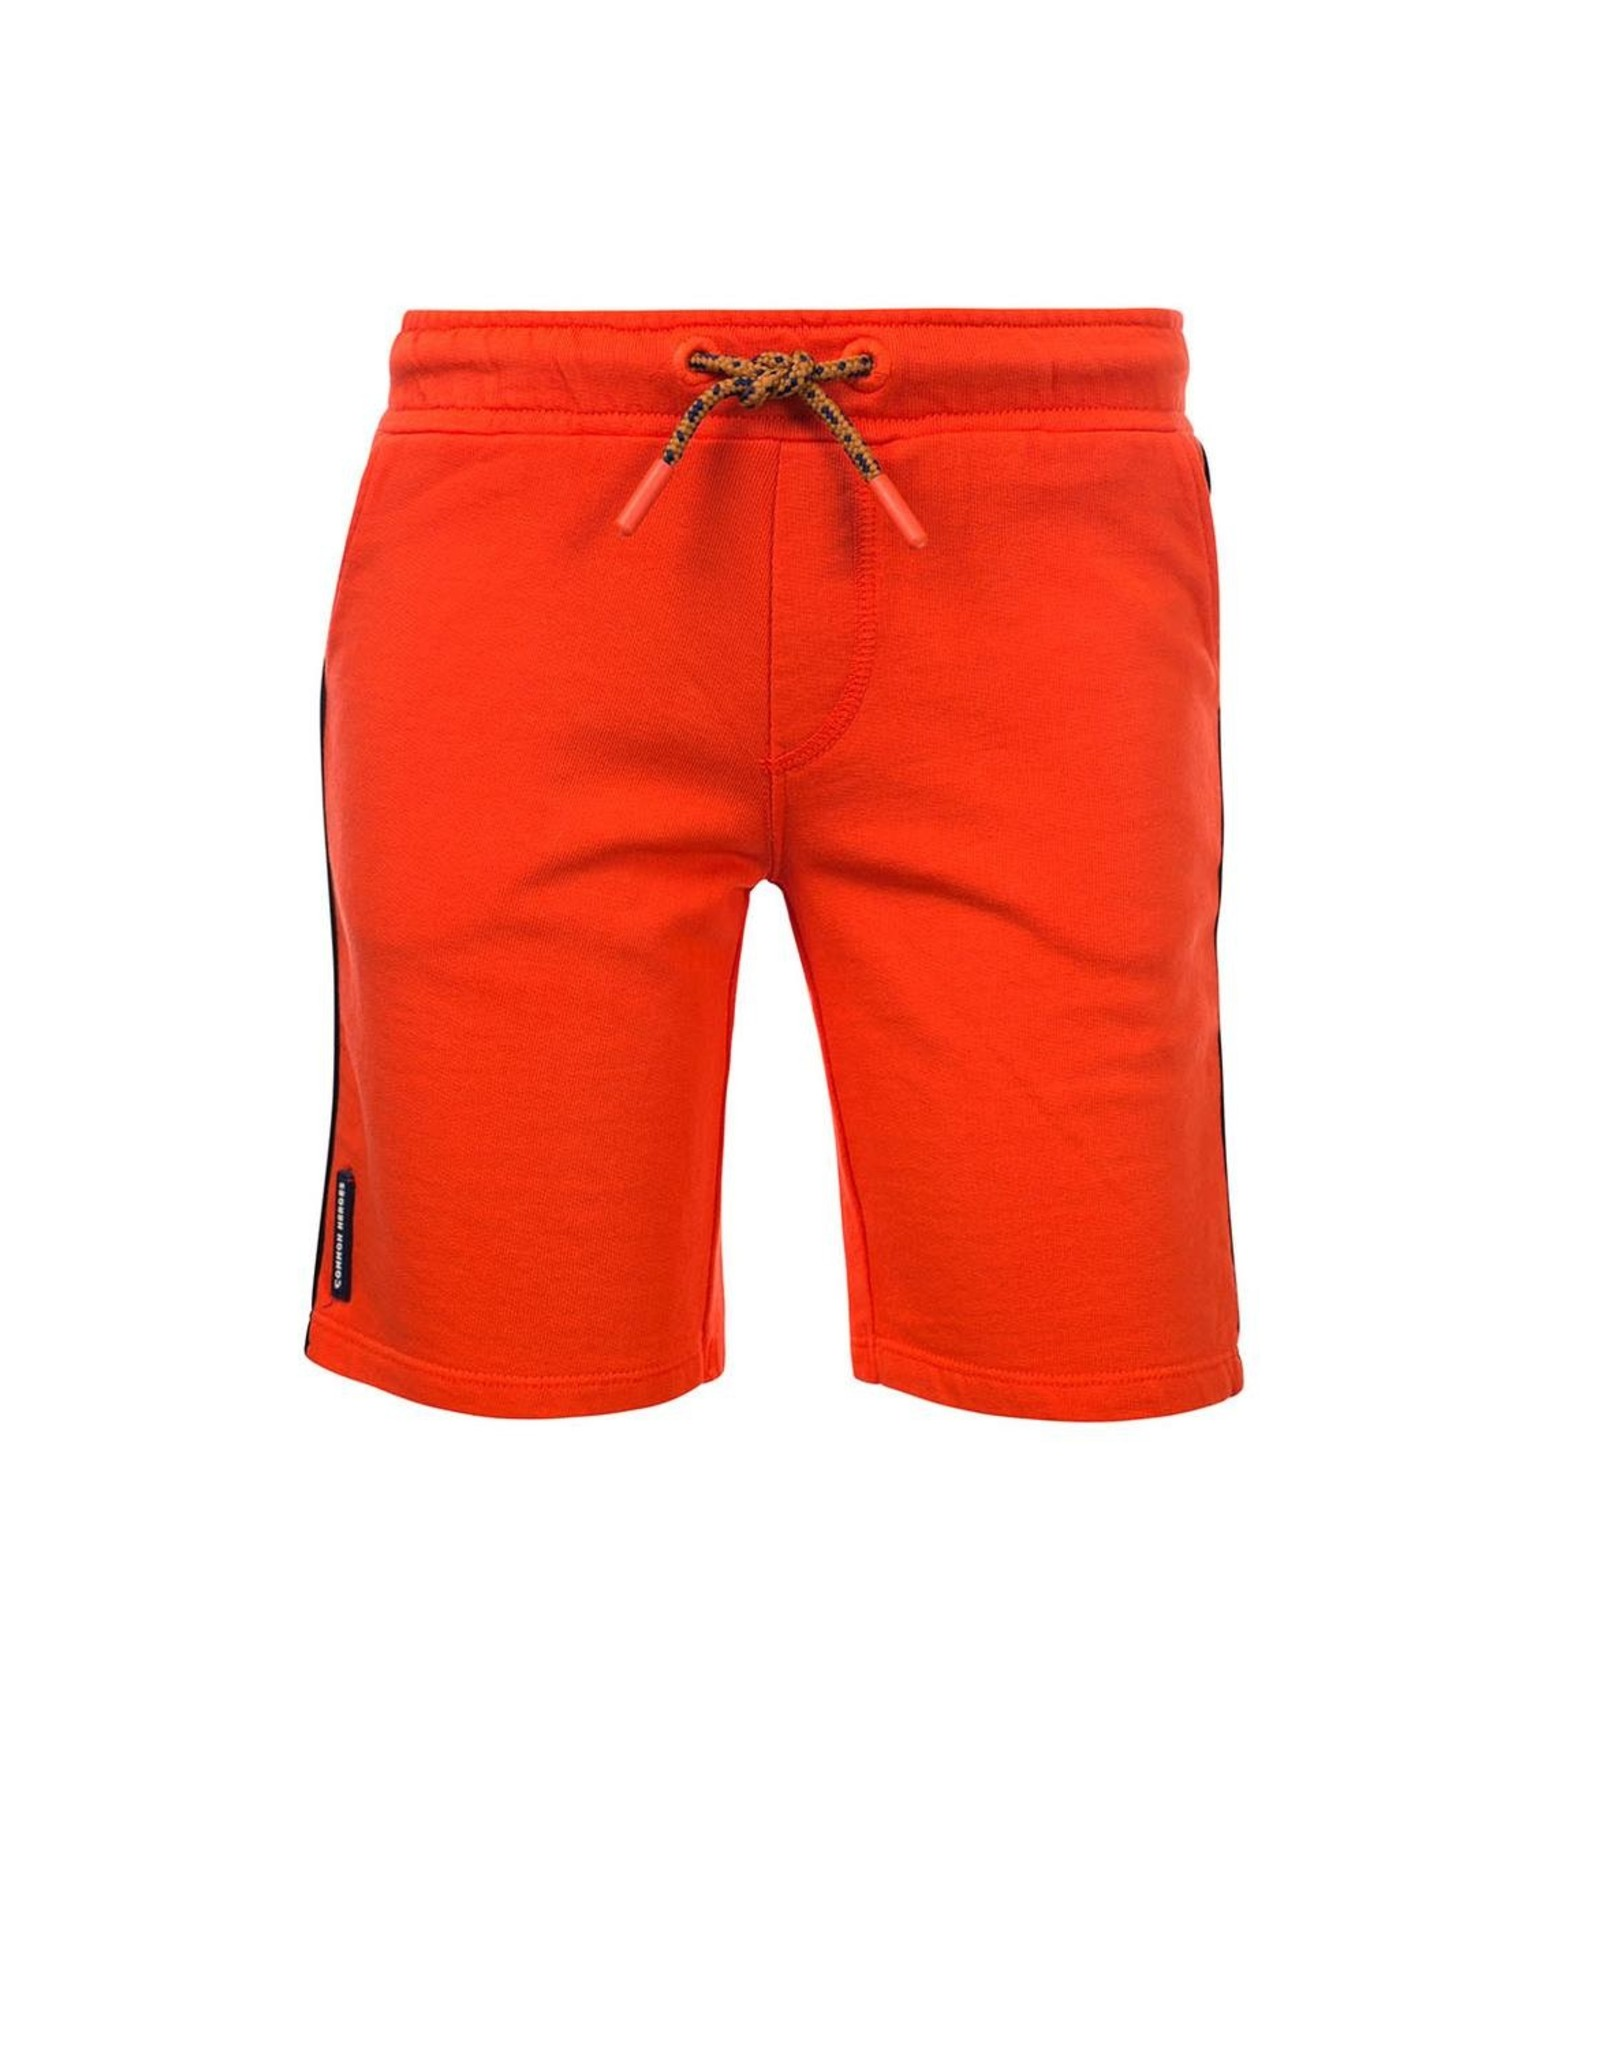 Common Heroes BOYD Shorts manderin